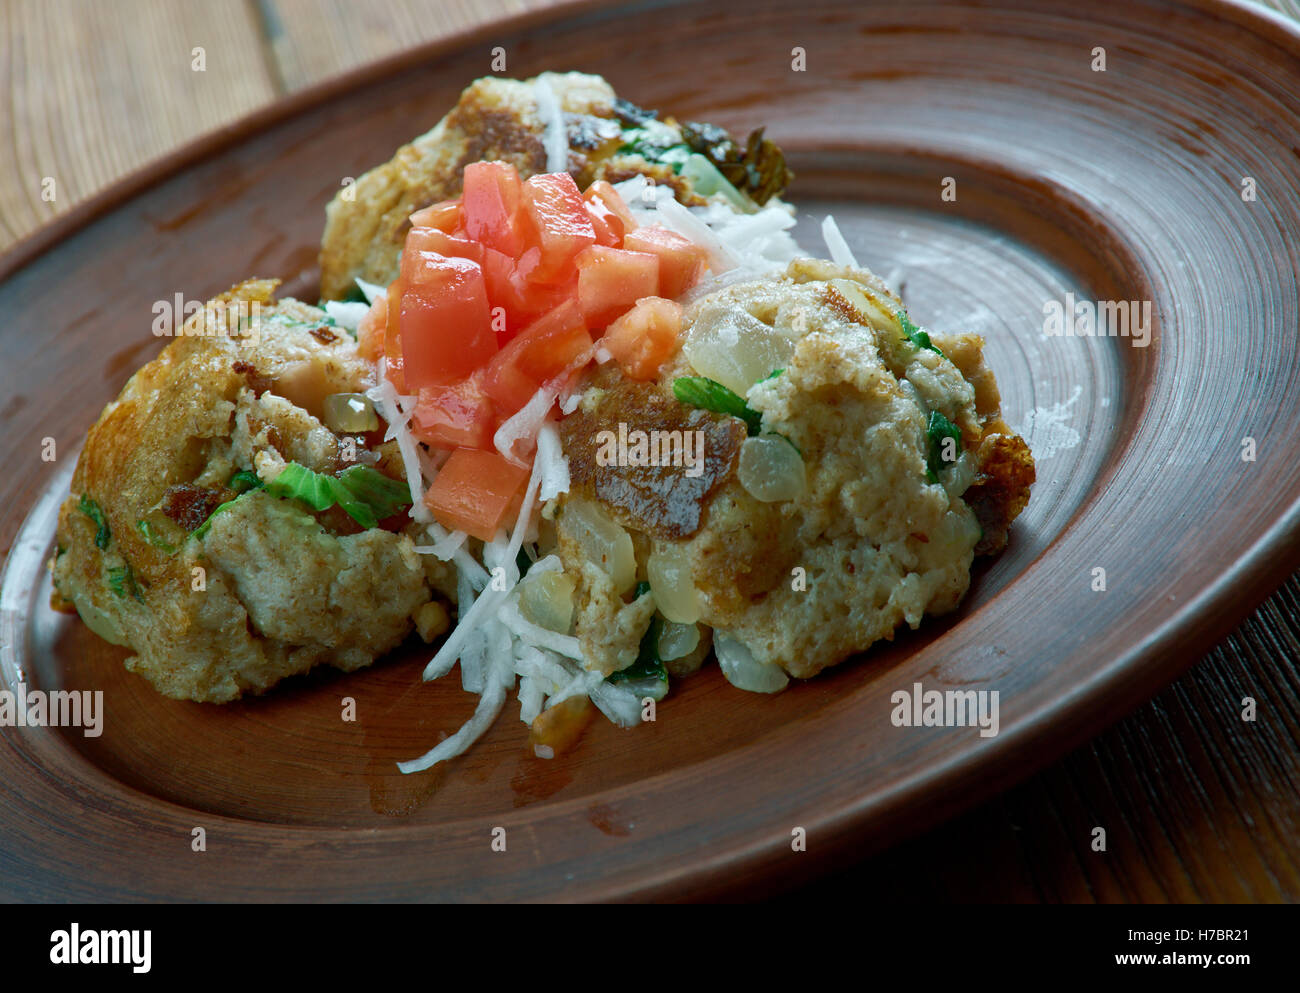 Knedle tyrolska -  polish bread dumplings - Stock Image